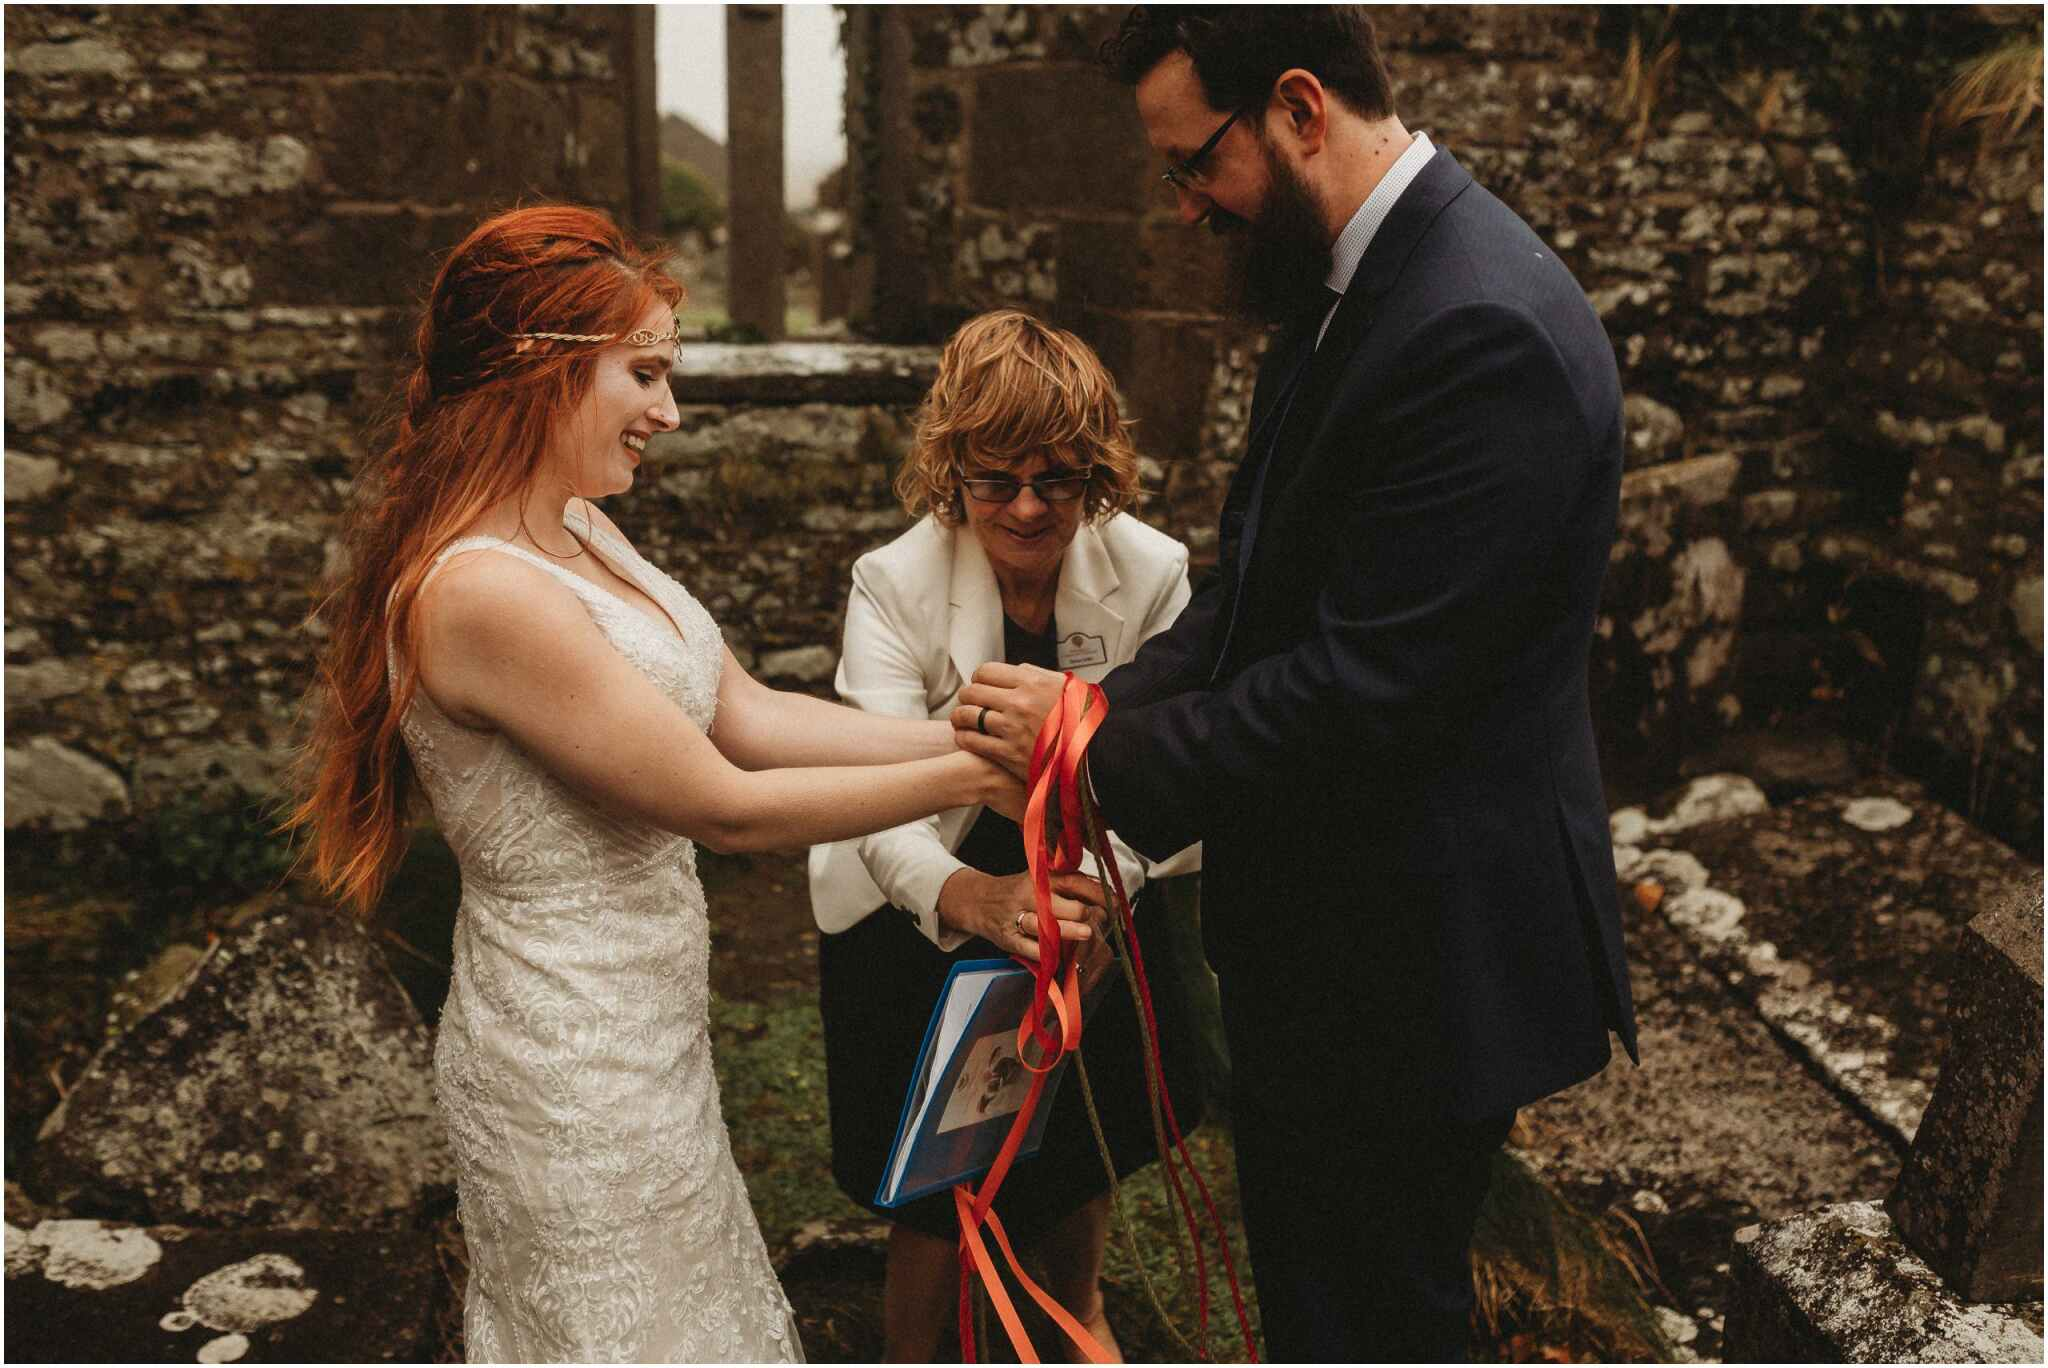 Elope in Ireland with Celtic Hand fasting